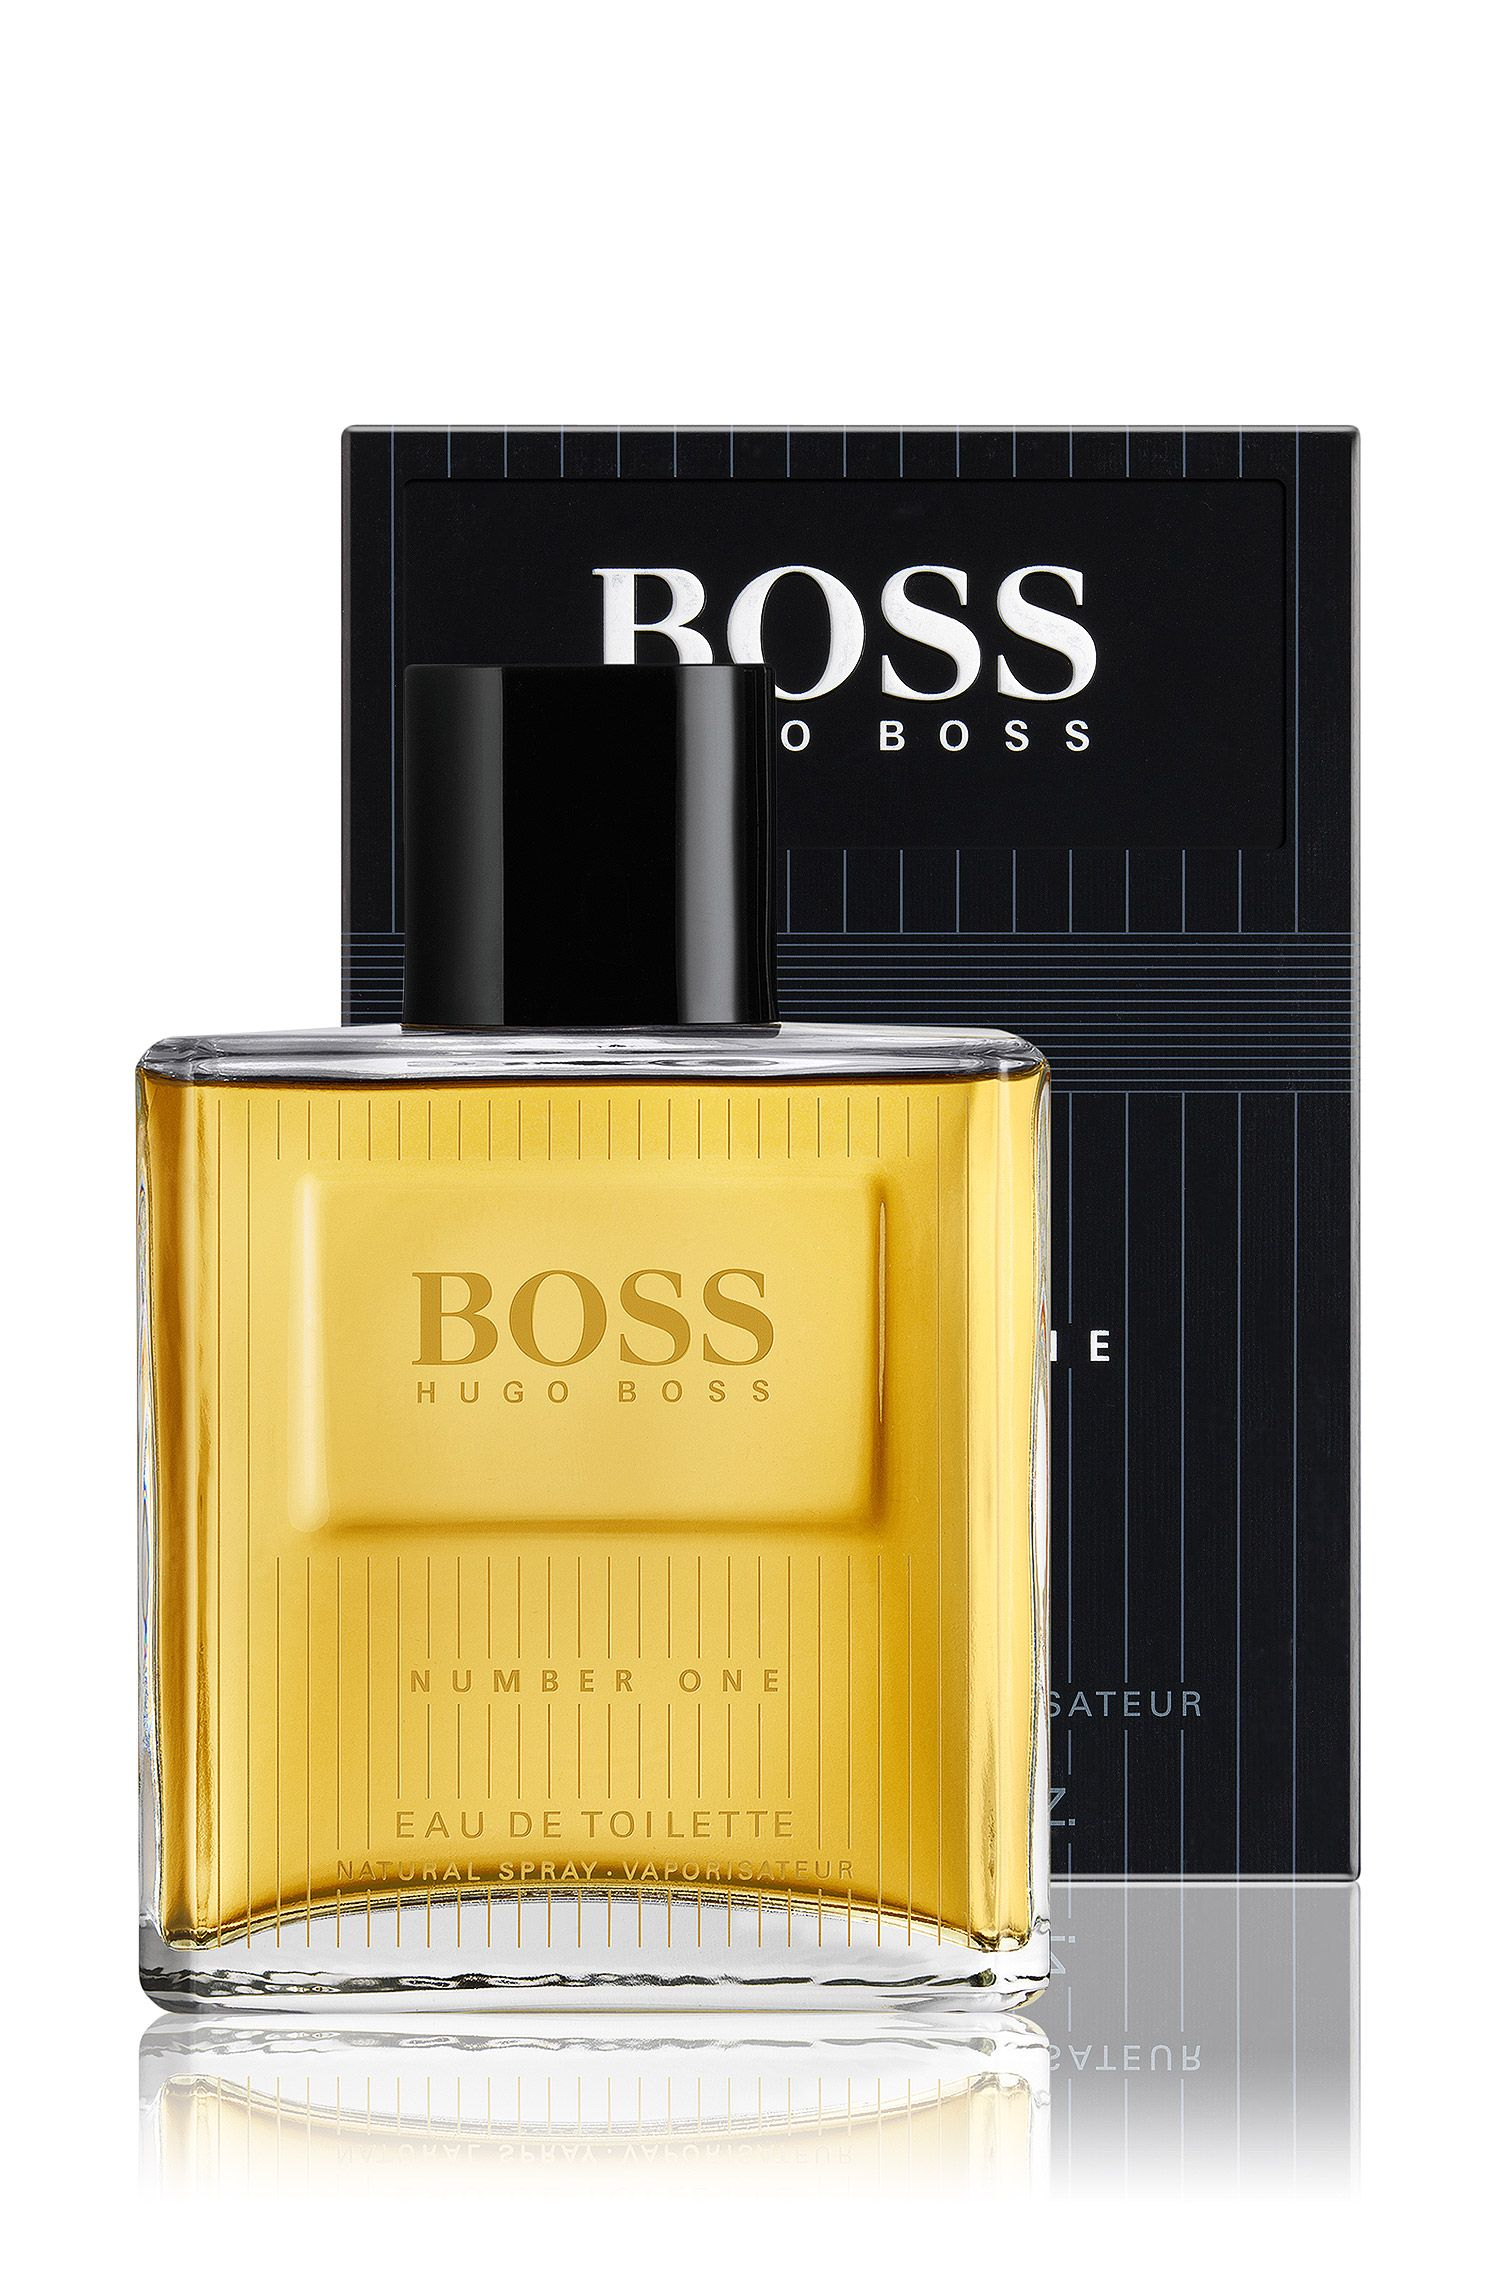 Eau de Toilette 'BOSS Number One' 125 ml